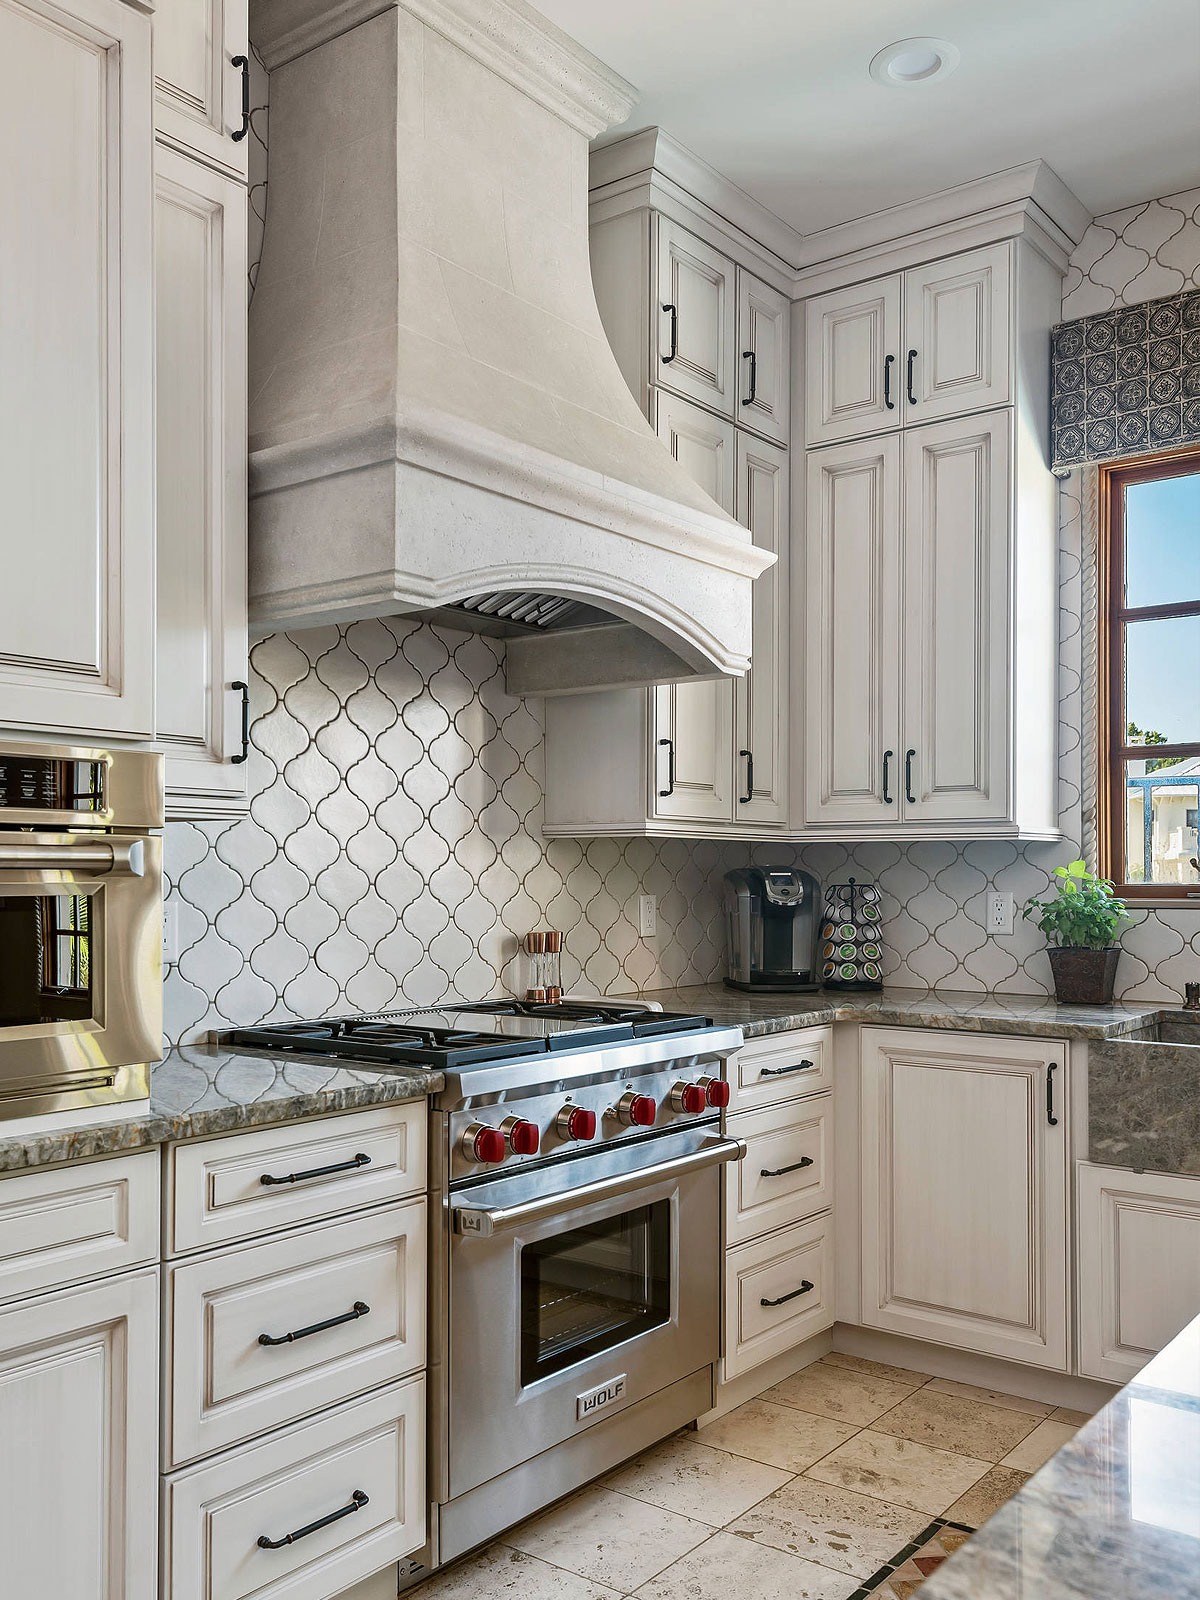 Rustic white kitchen arabesque backsplash tile